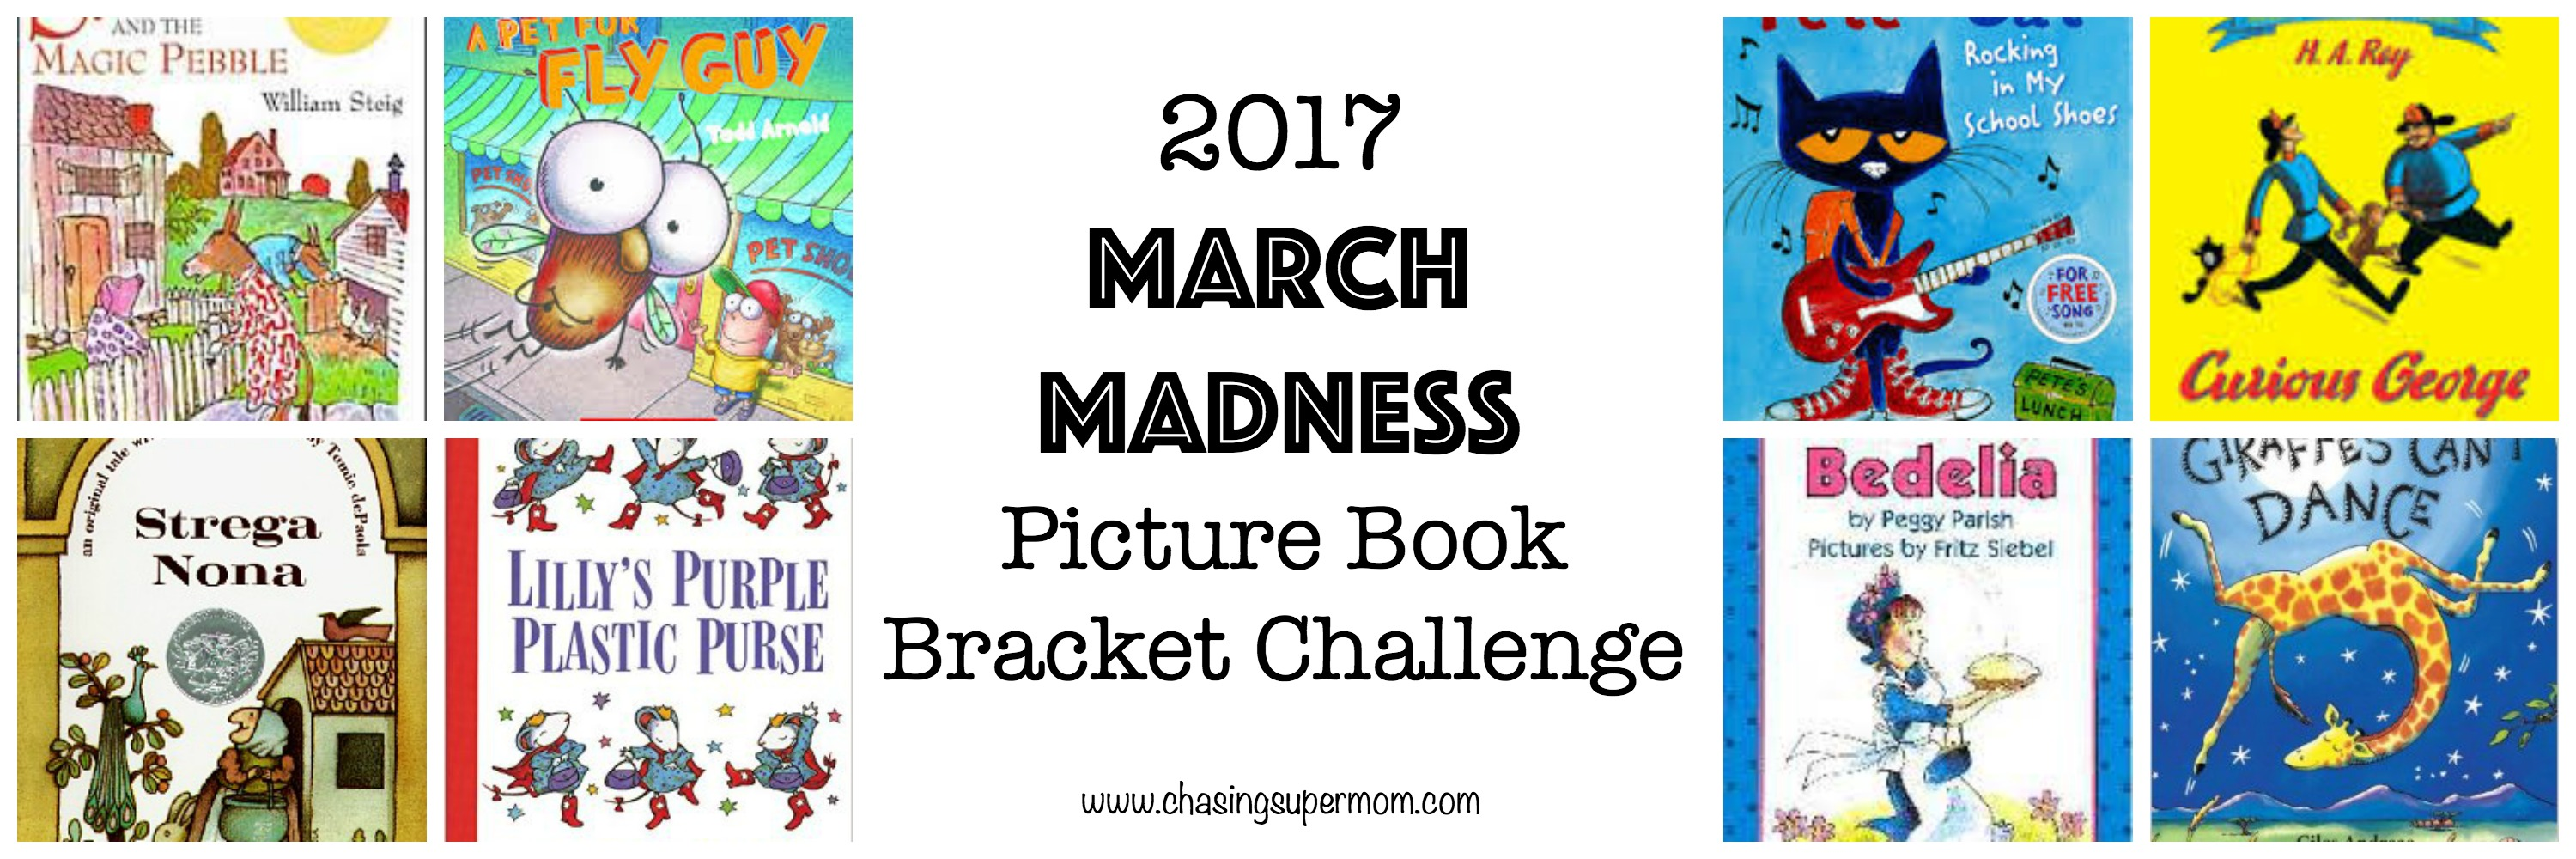 March Madness Picture Book Bracket Challenge